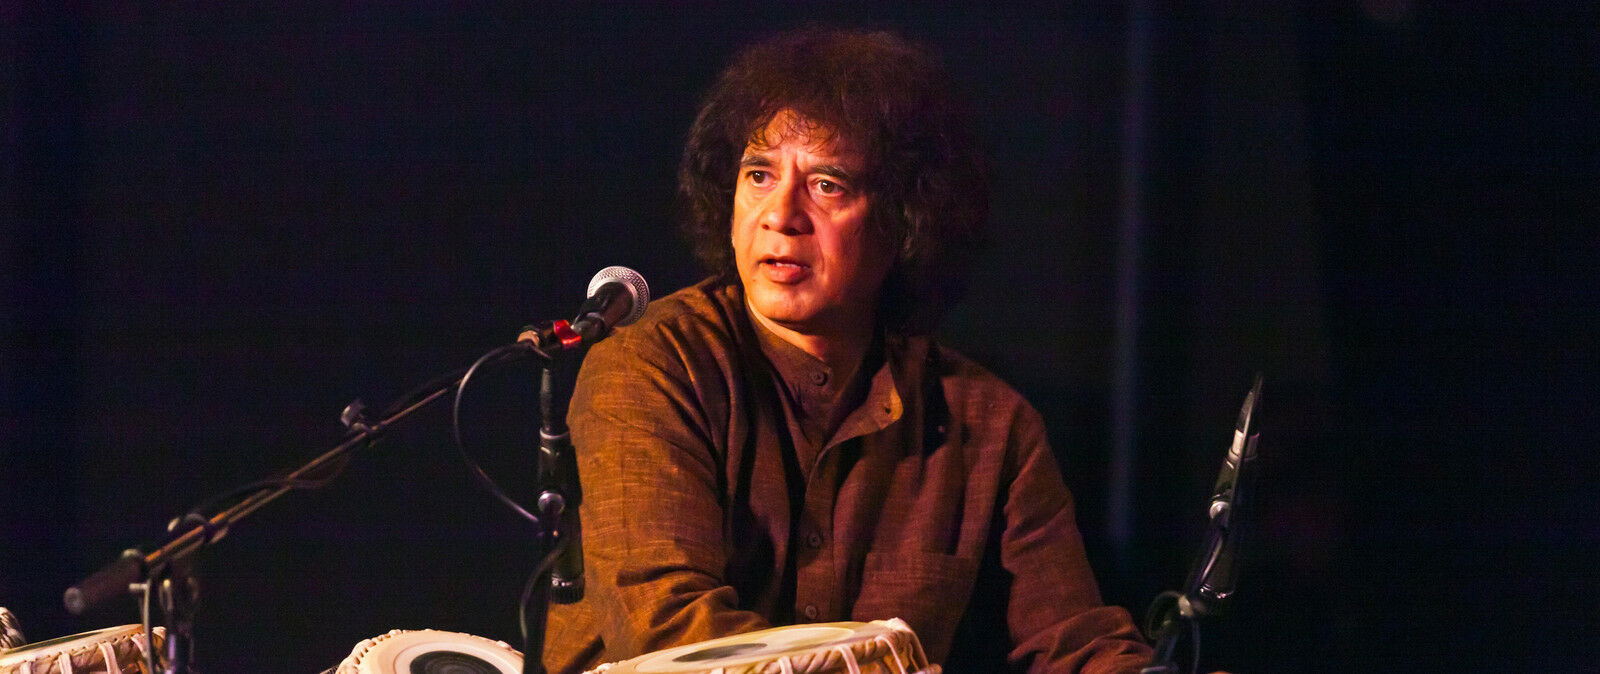 Crosscurrents with Zakir Hussain, Dave Holland and more